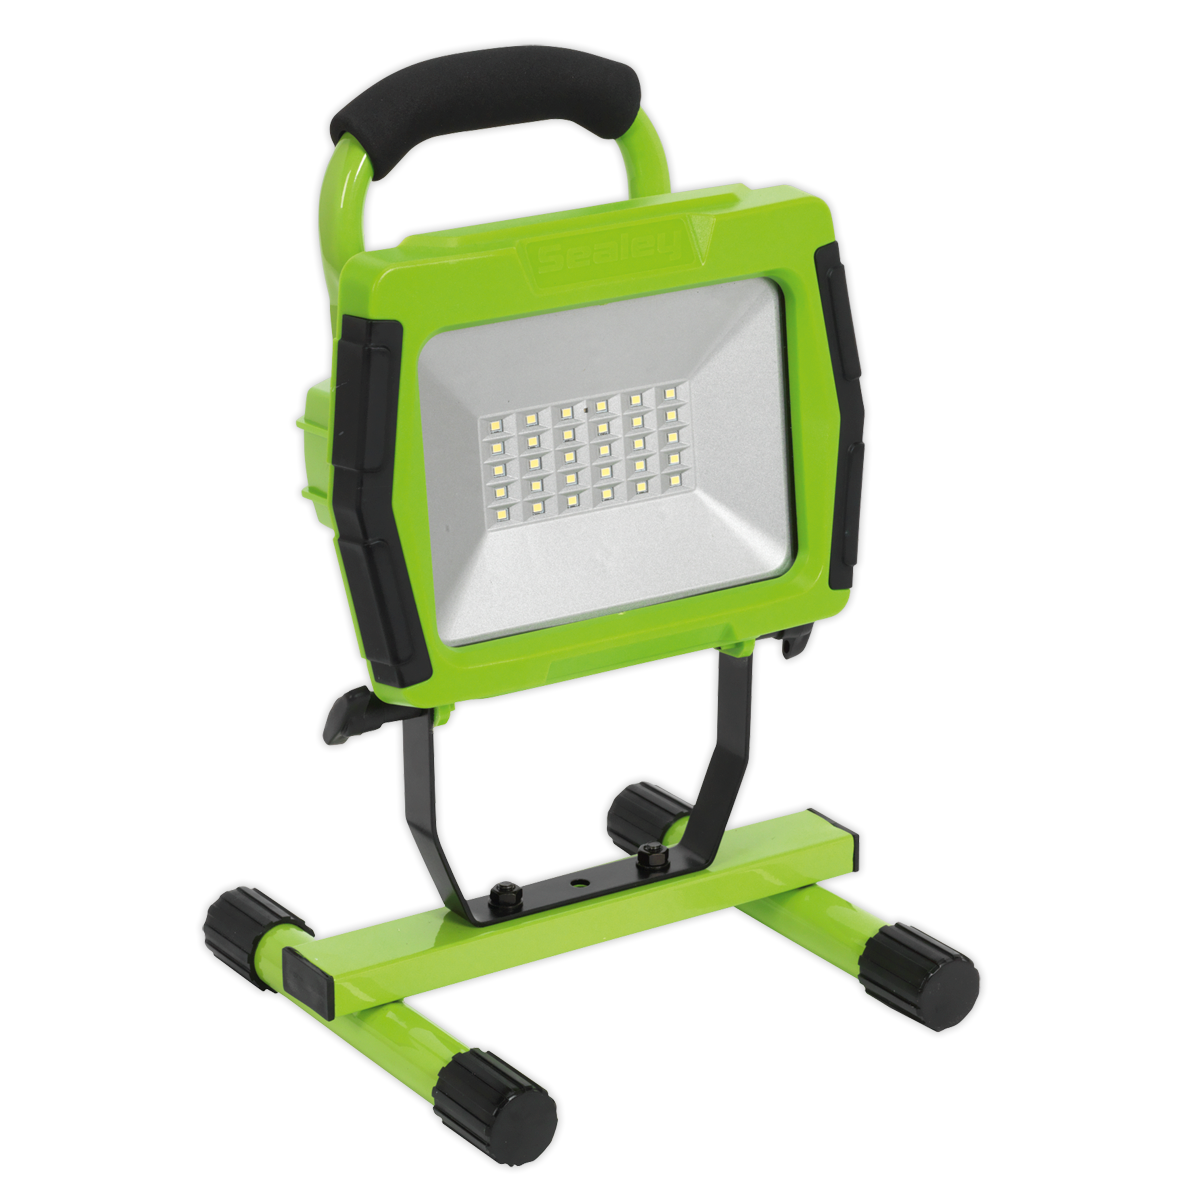 SEALEY FLOODLIGHT PORTABLE RECHARGEABLE 30SMD LED Lithium-ion GREEN